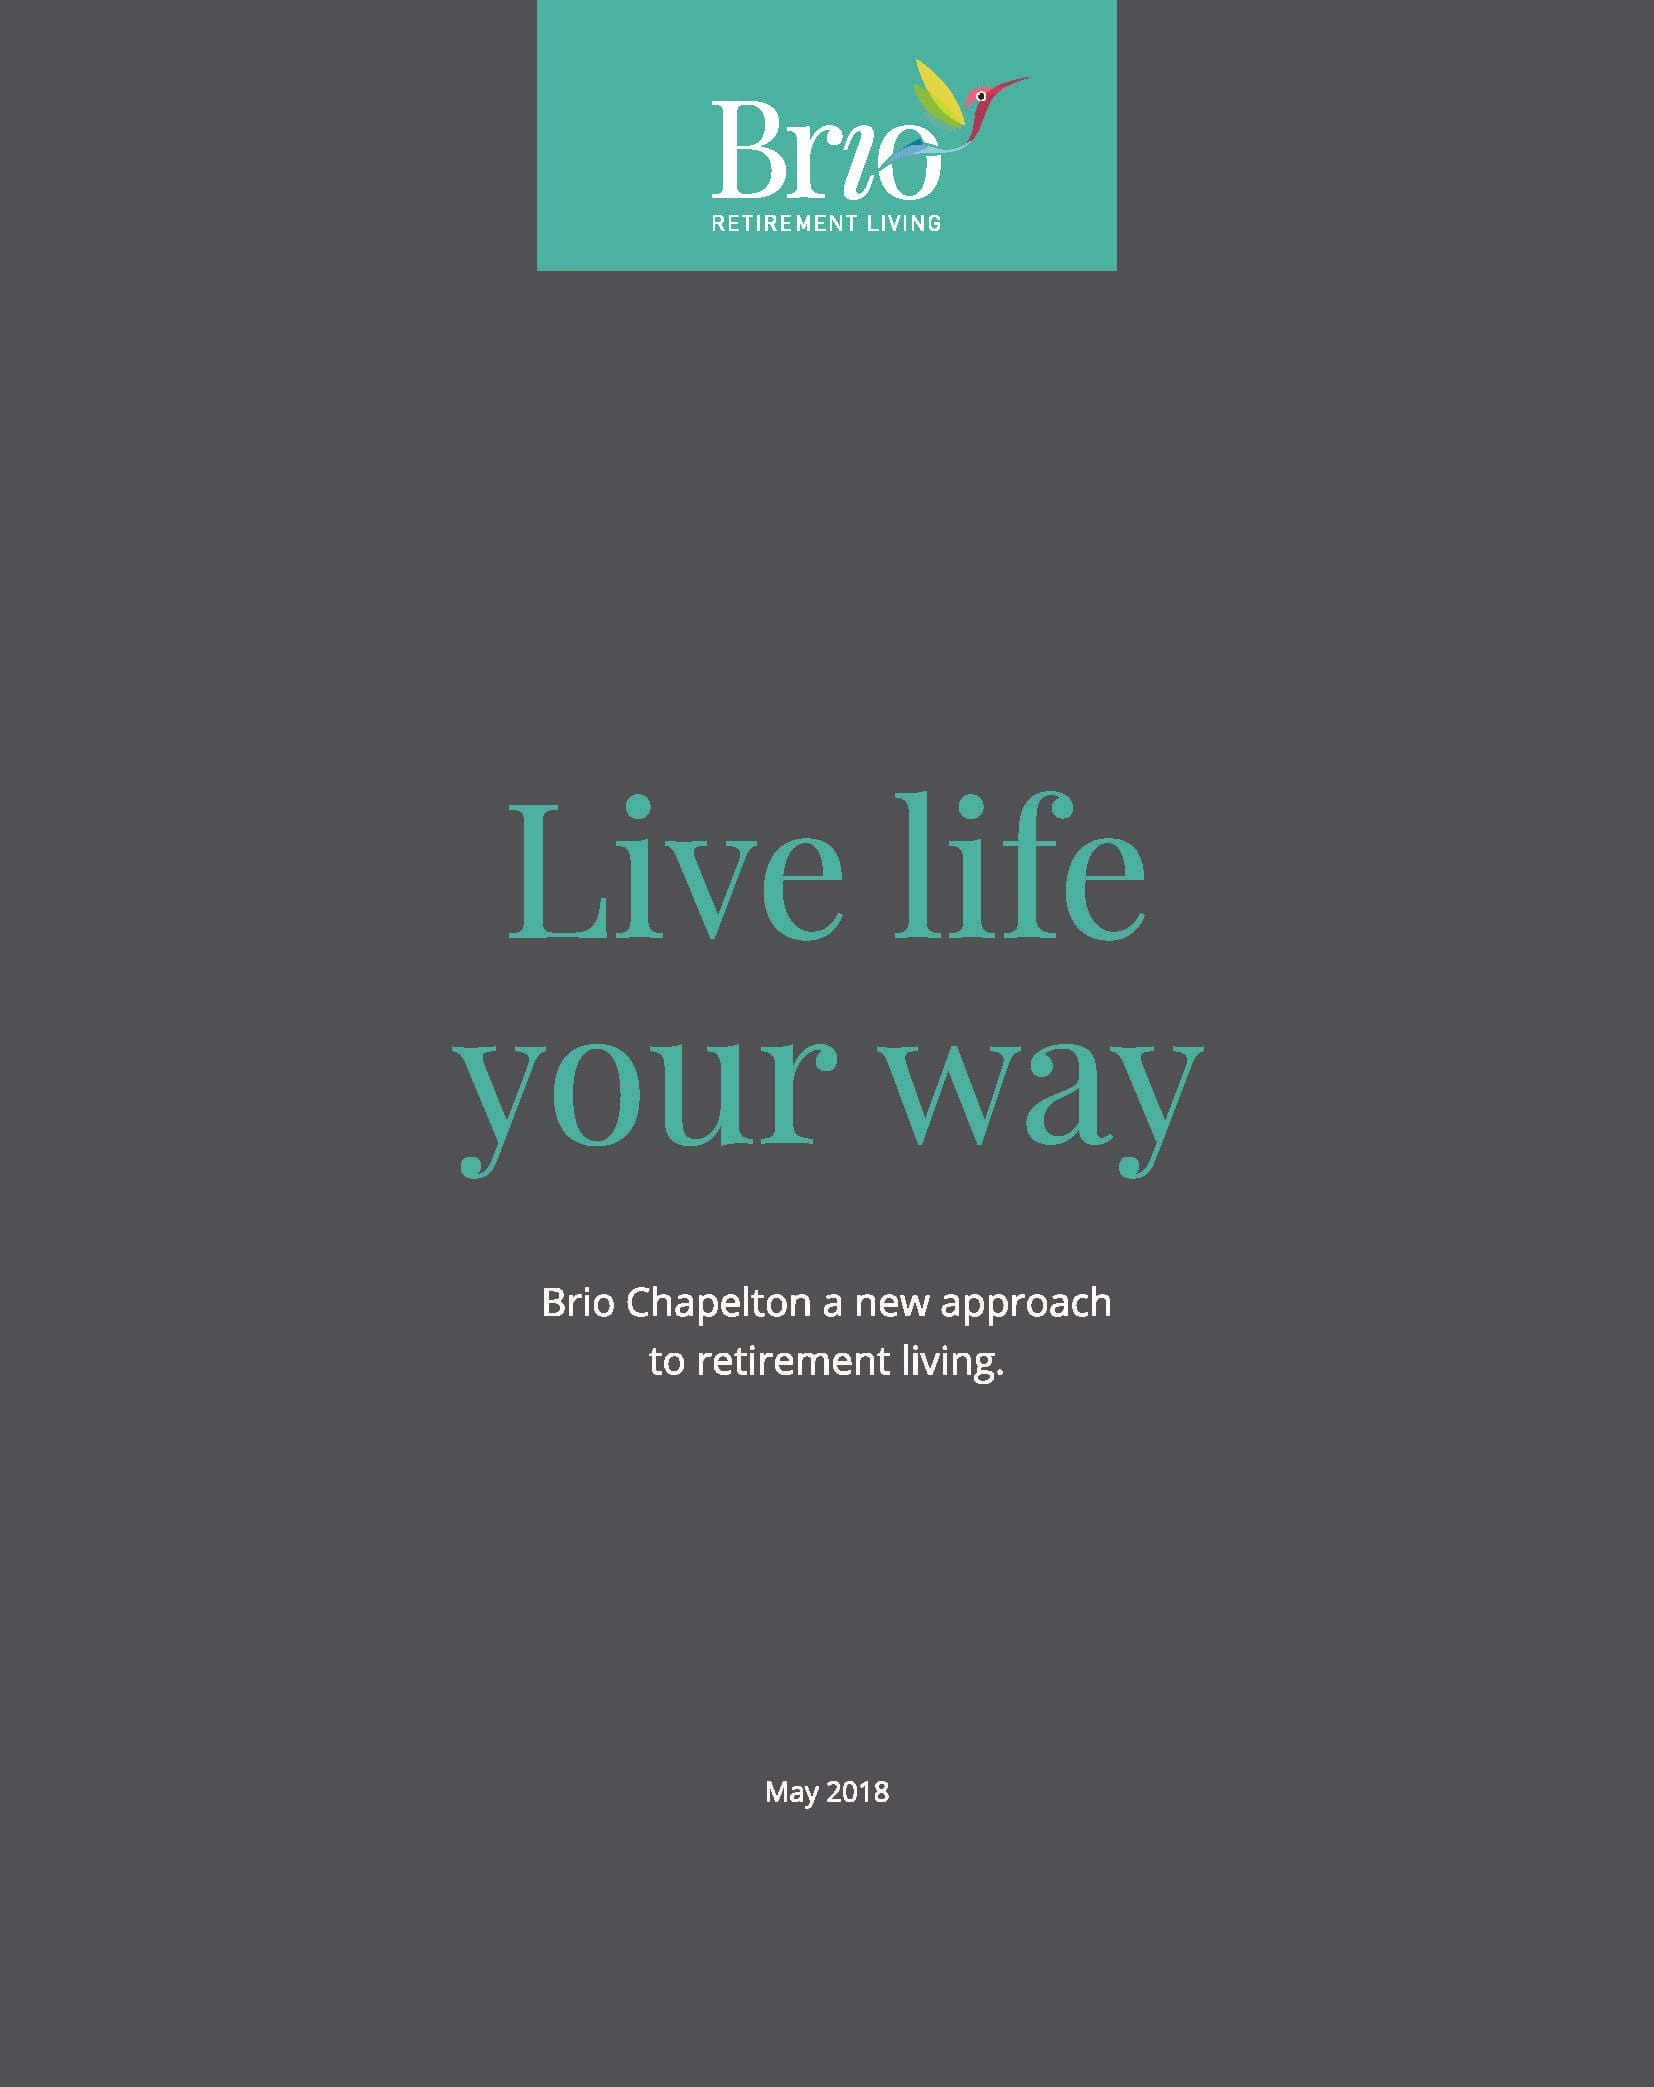 Brio Chapelton Sales Brochure May 2018_Page_01.jpg